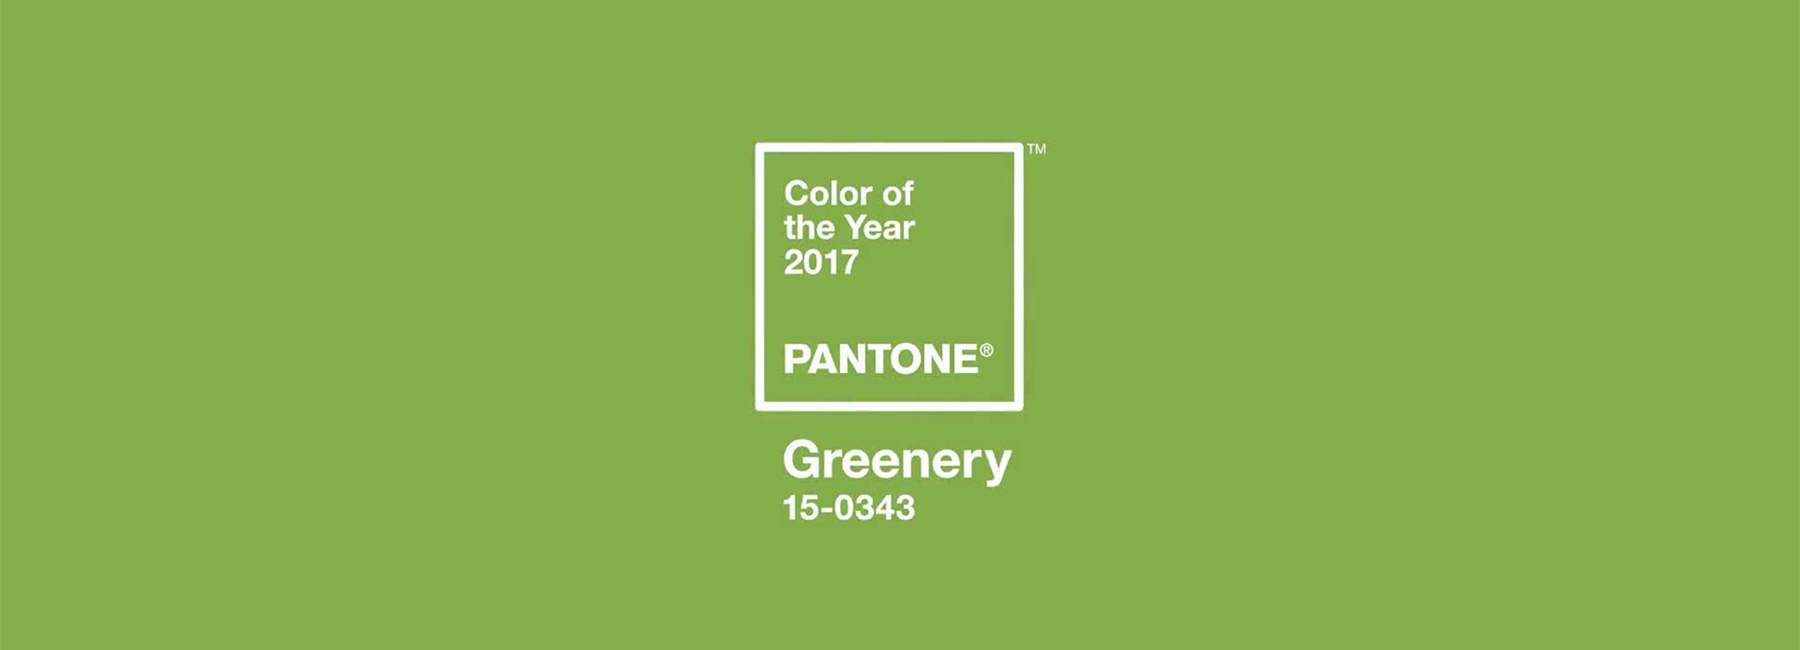 Pantone Color 2016 The Pantone Color Of The Year 2017 Greenery